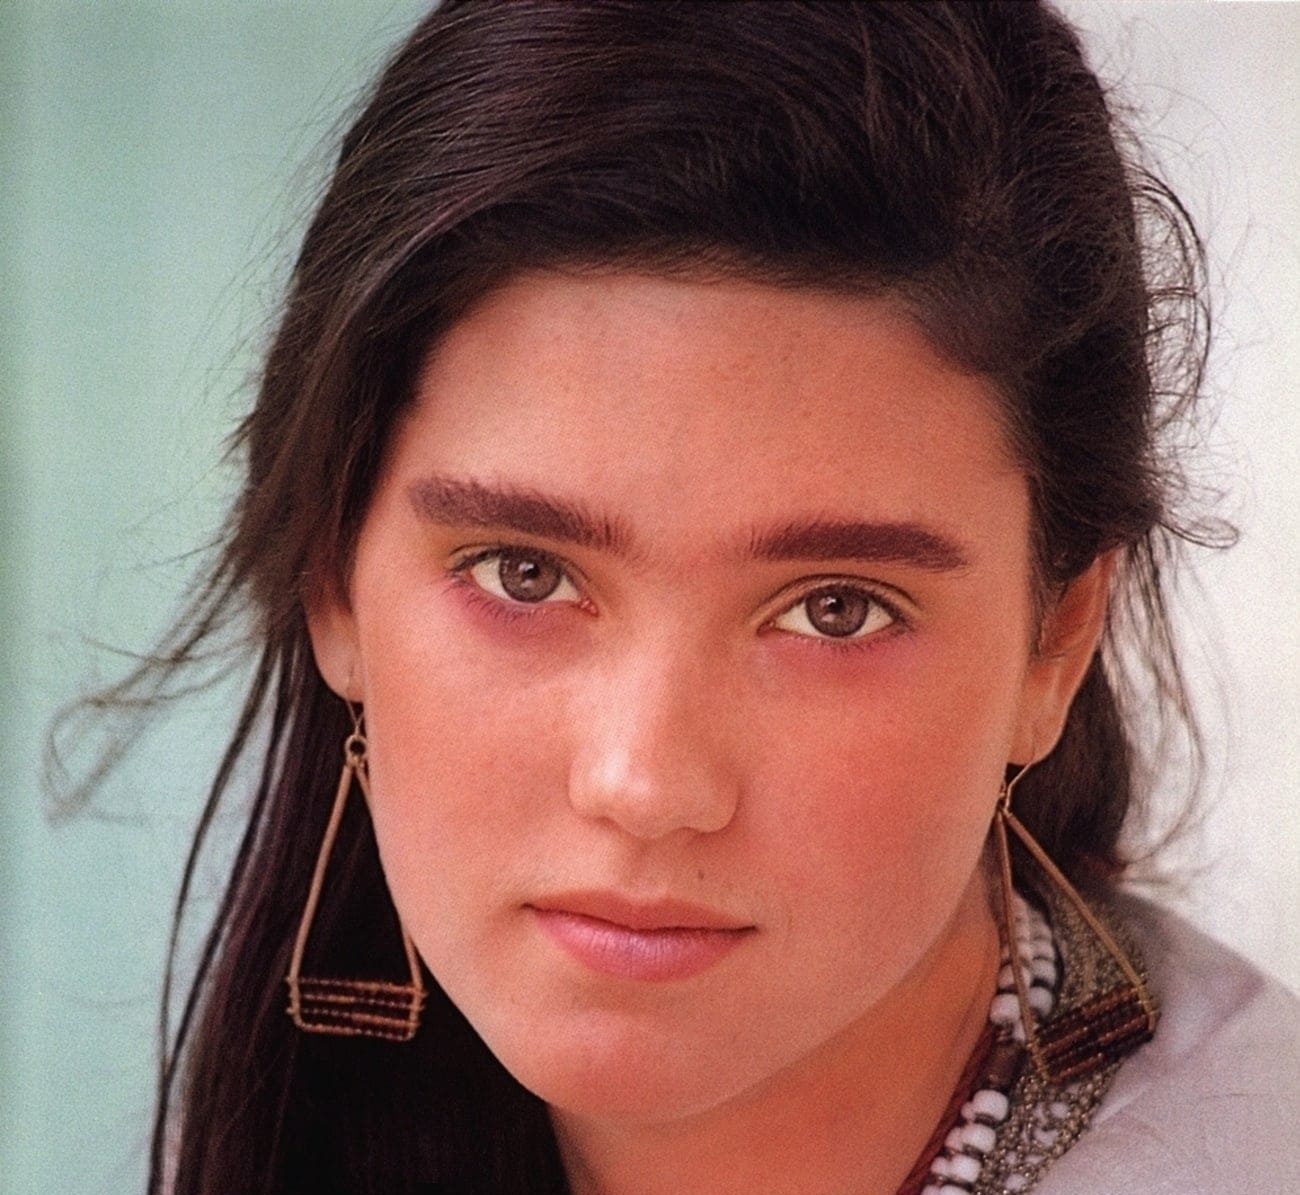 young jennifer connelly in white blouse and white beaded necklace photo u1 e1610012784200 20 Things You Probably Didn't Know About Jennifer Connelly